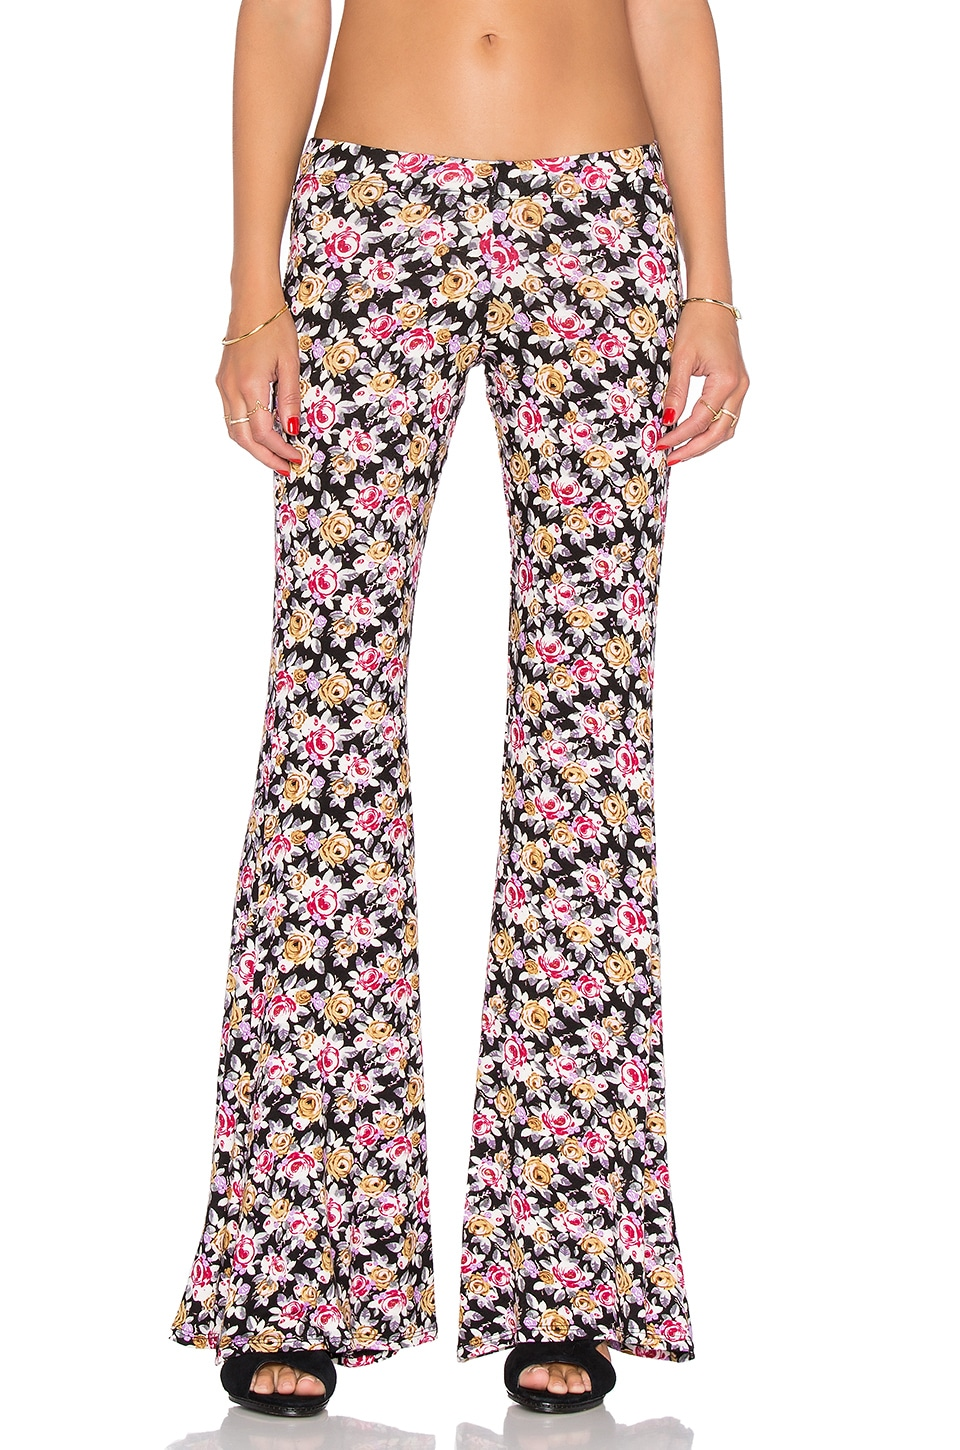 Michael Lauren Mars Bell Pant in Fall Floral